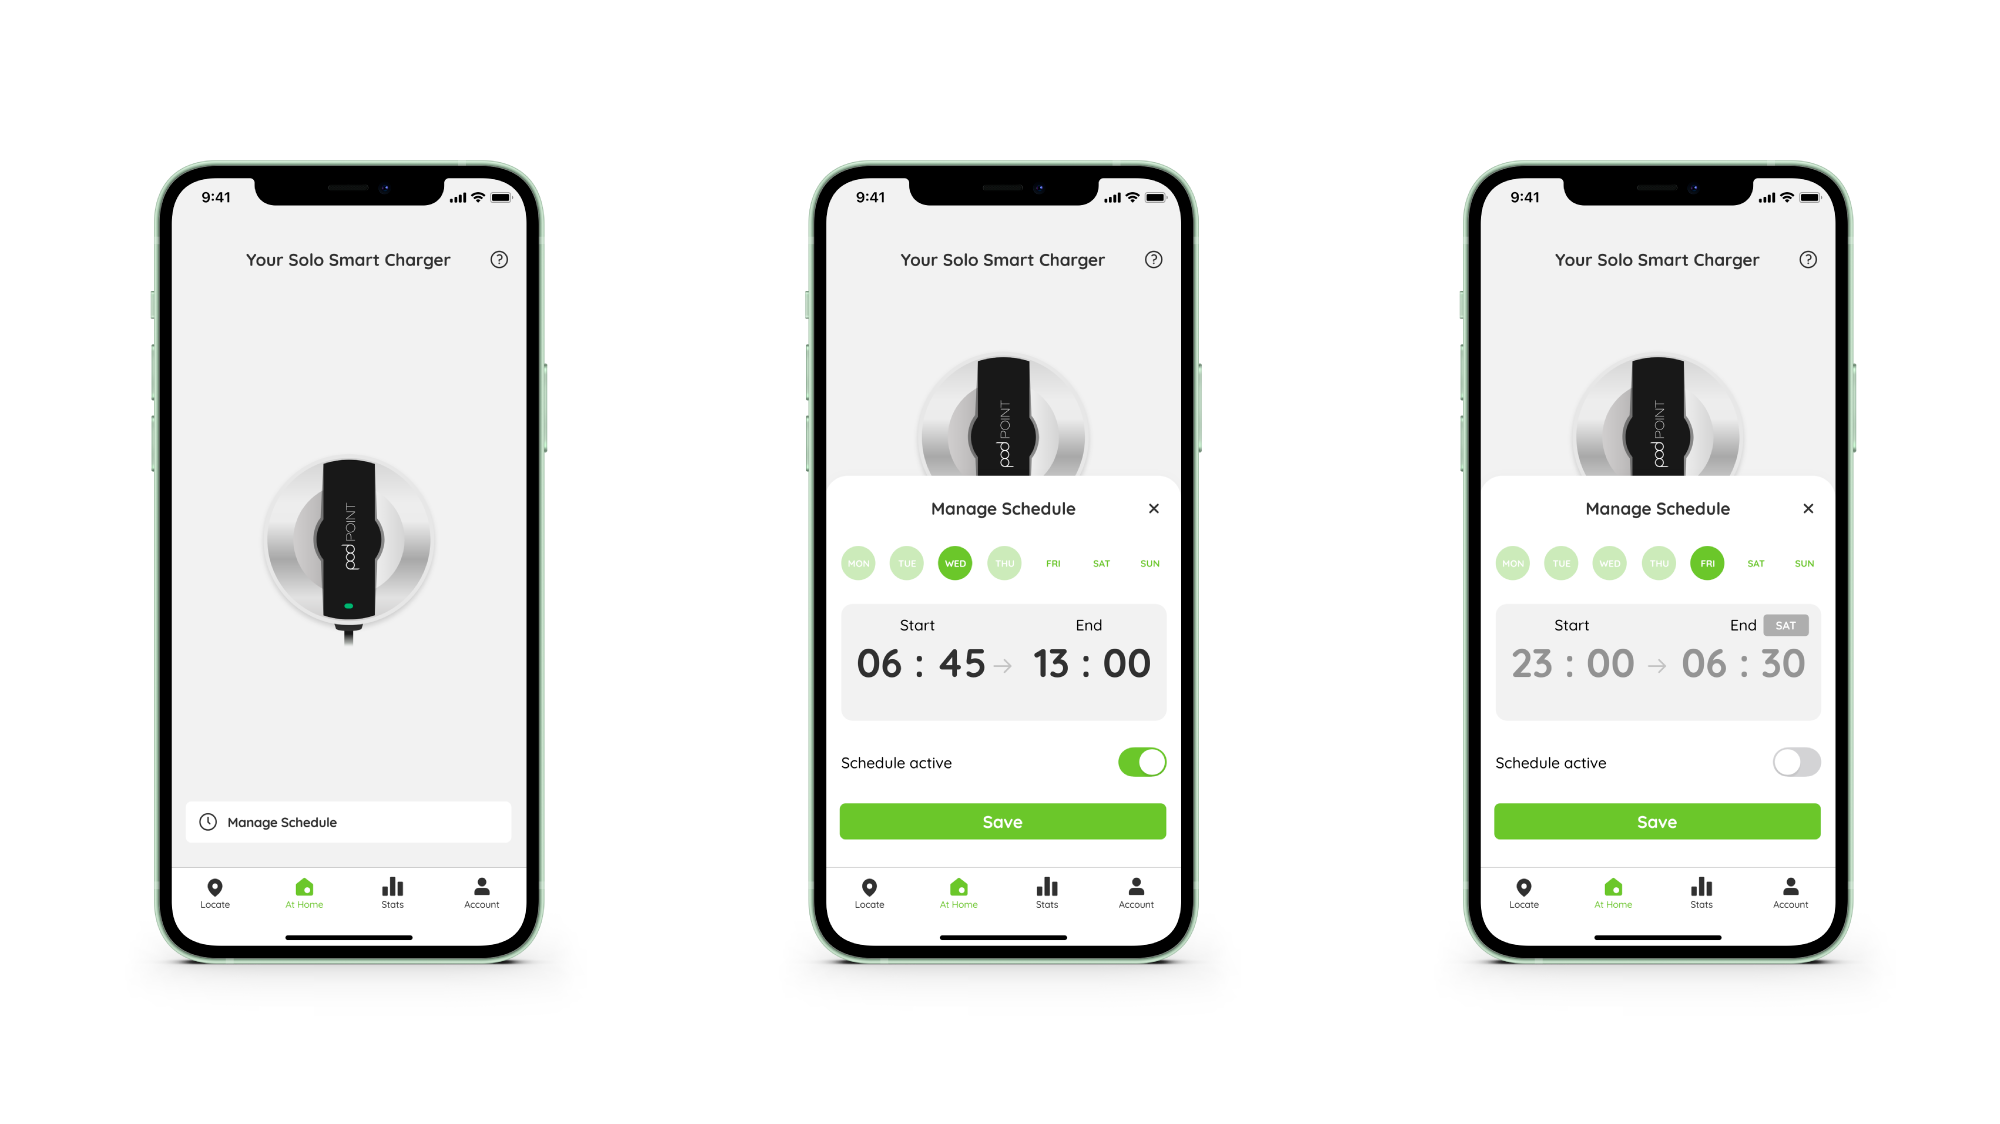 Pod Point App screenshots of Charge Scheduling feature